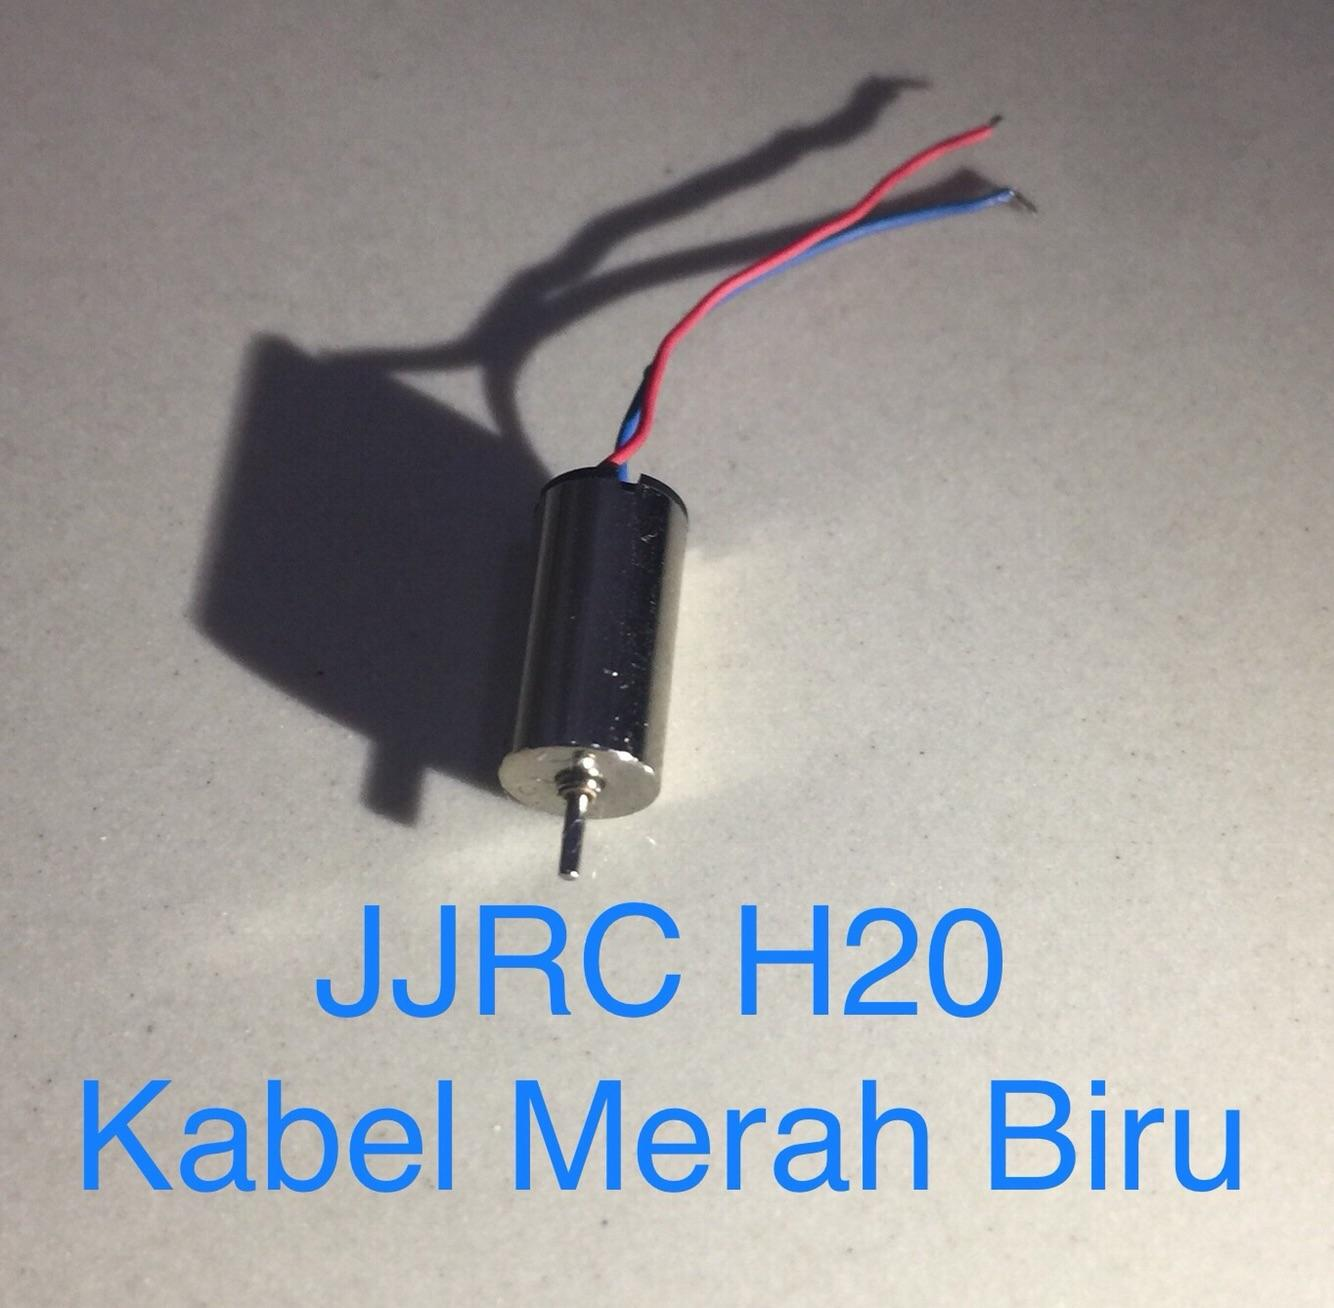 Tamiya 15307 Ultra Dash Motor Dinamo List Harga Terkini Dan 15455 Light Jjrc H20 Original